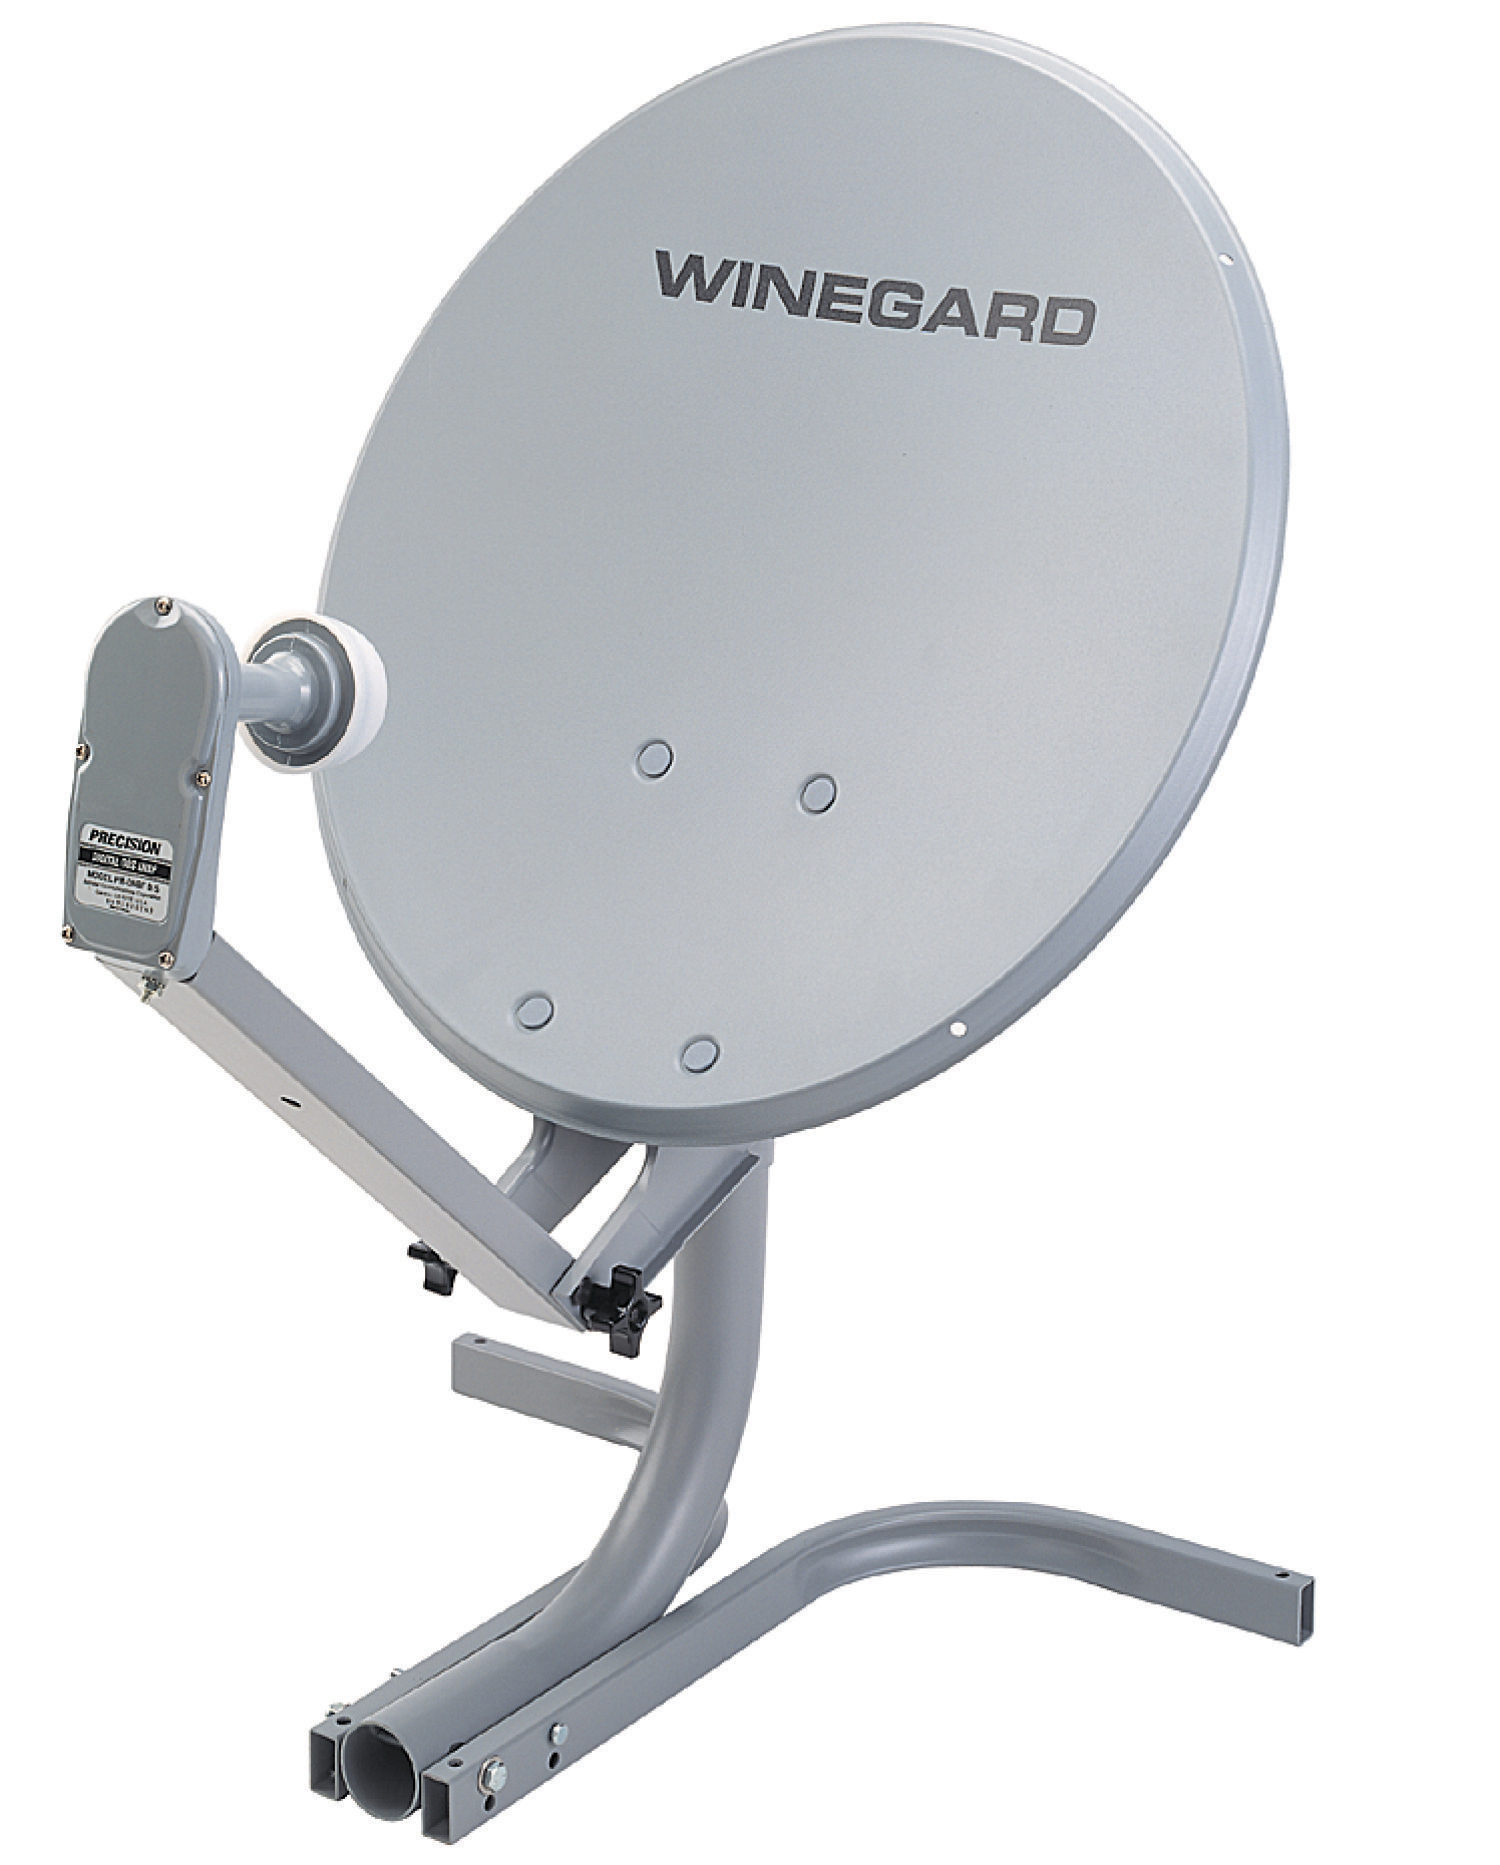 winegard pm 2000 portable satellite tv antenna ebay. Black Bedroom Furniture Sets. Home Design Ideas